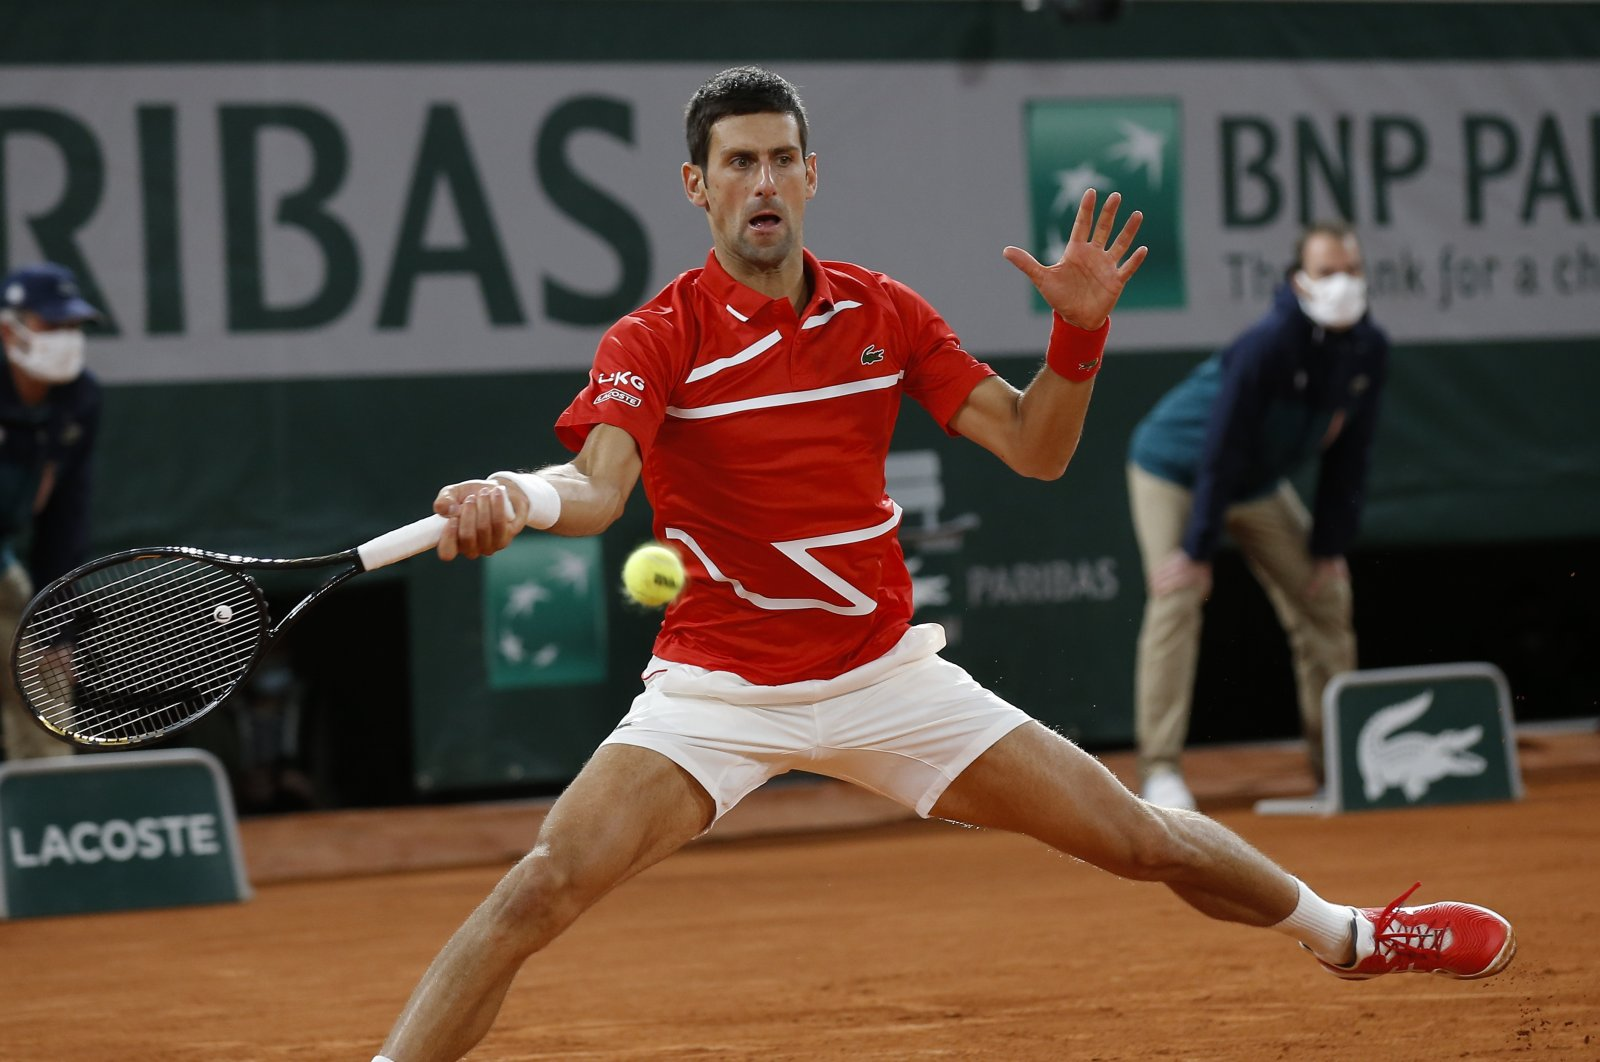 Novak Djokovic in action against Rafael Nadal during the French Open final, in Paris, France, Oct. 11, 2020. (AP Photo)